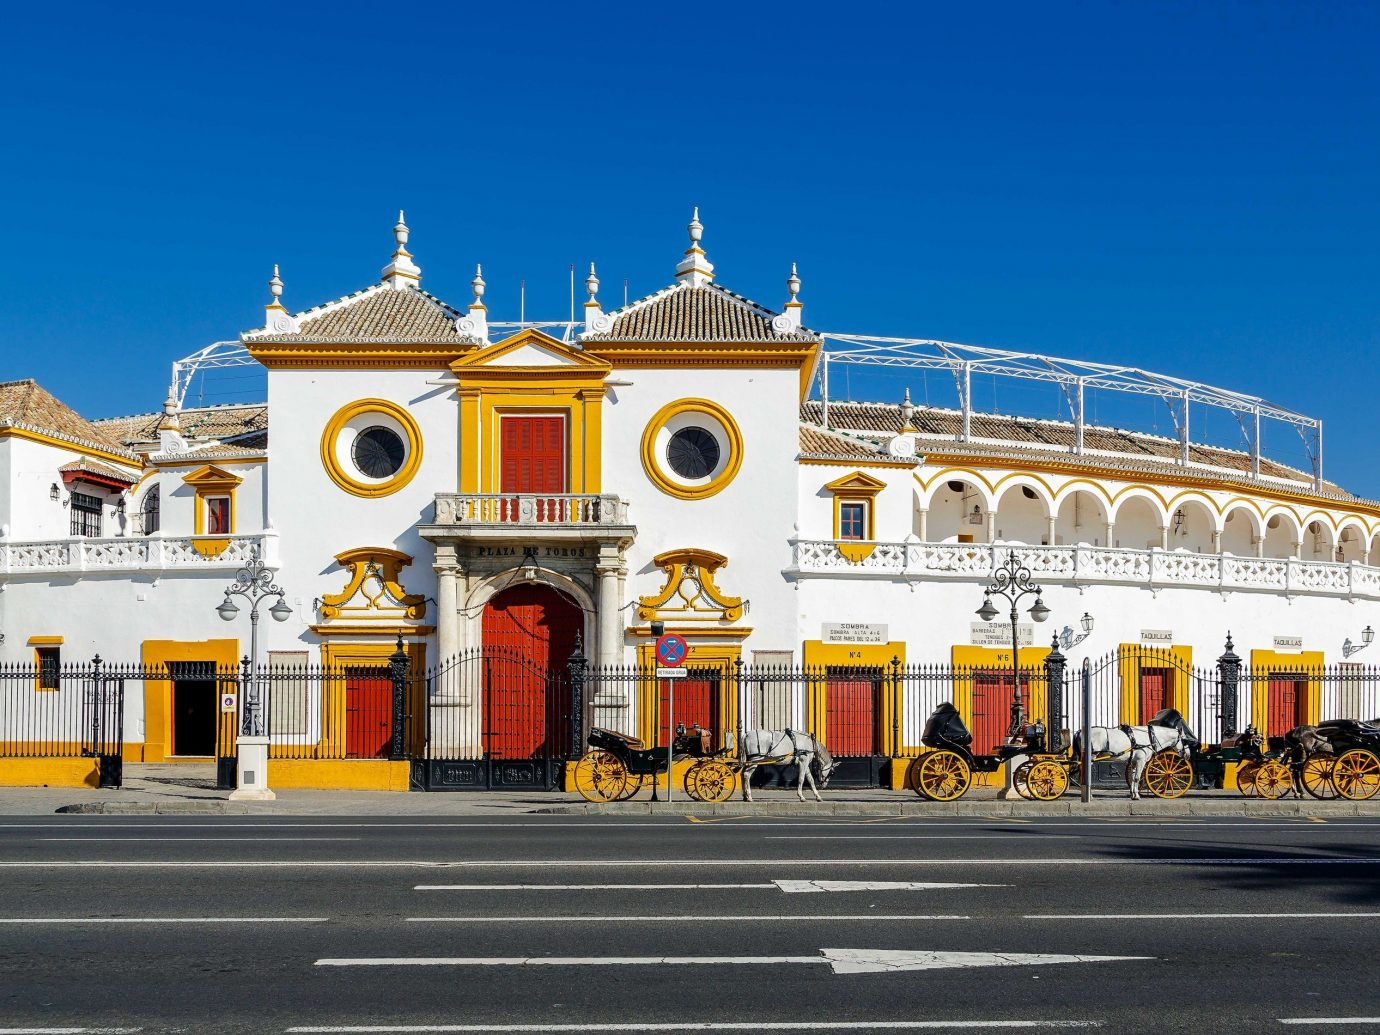 Offbeat road building outdoor landmark yellow sky City town square plaza metropolis tourist attraction facade metropolitan area palace classical architecture tourism arch